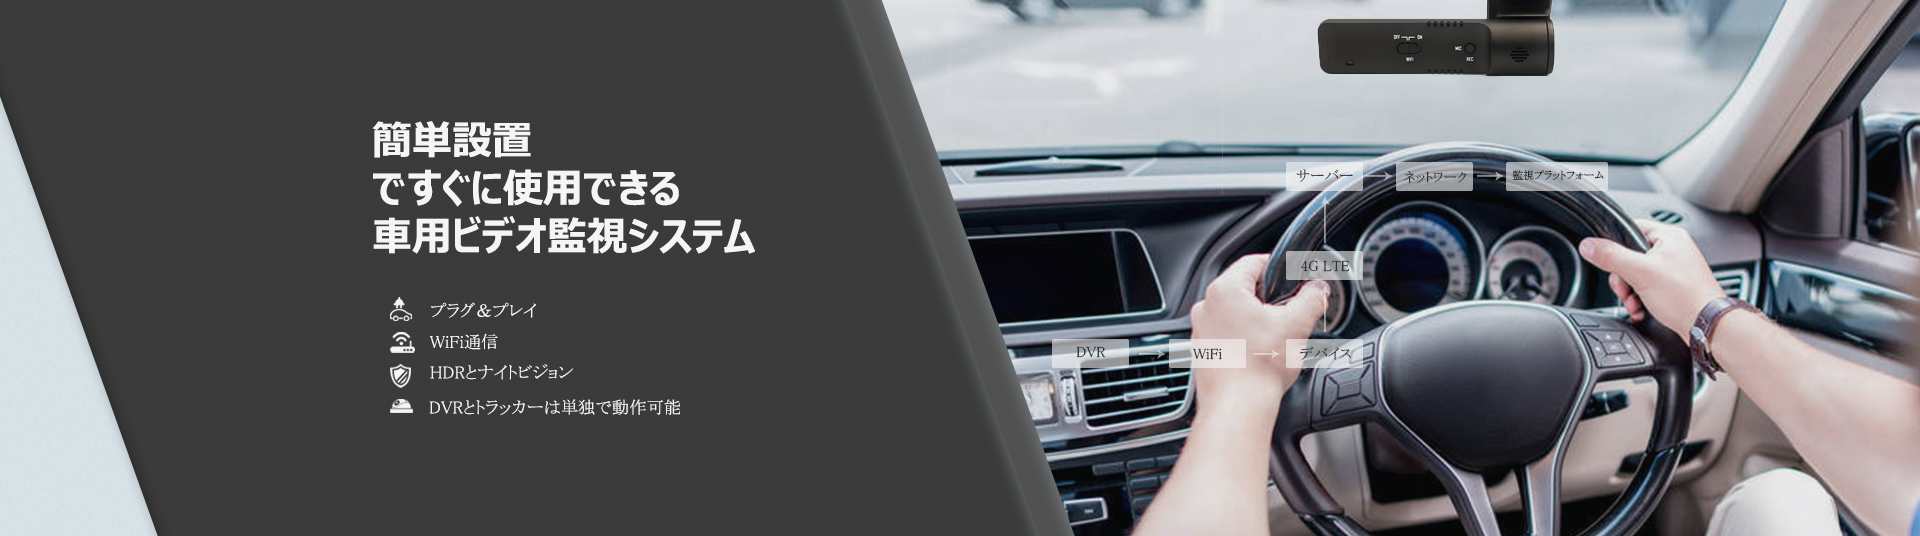 Easy-to-install-Vehicle-Video-Surveillance-System-_jp2